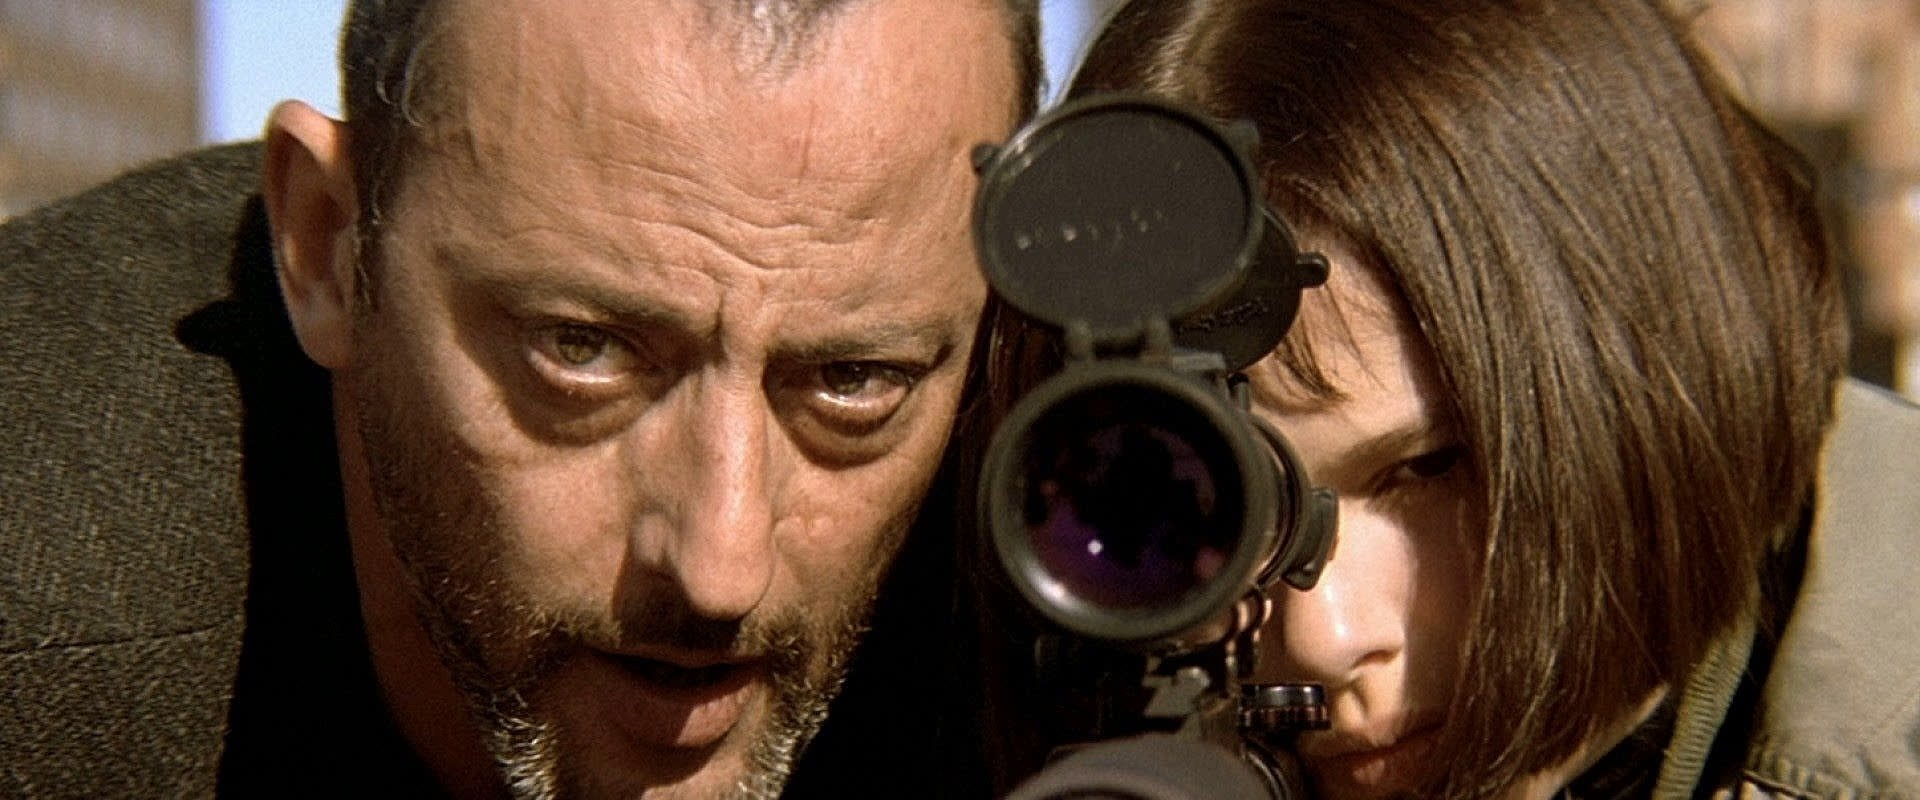 Léon: The Professional 123Movies Watch Full Movie Online Stream